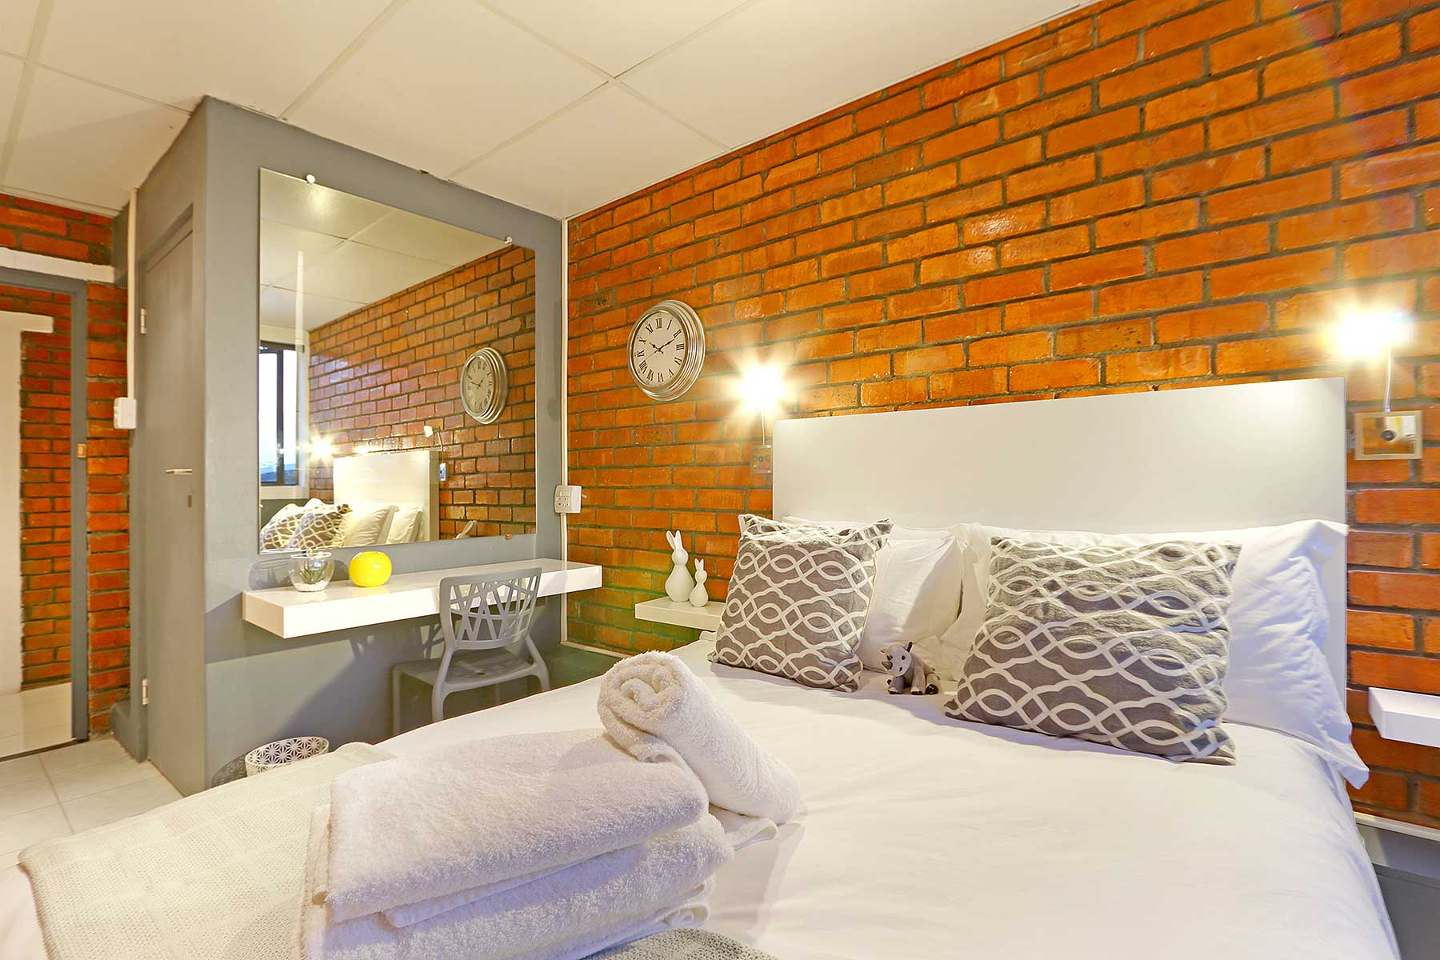 Affordable Hotel Rooms In Cape Town